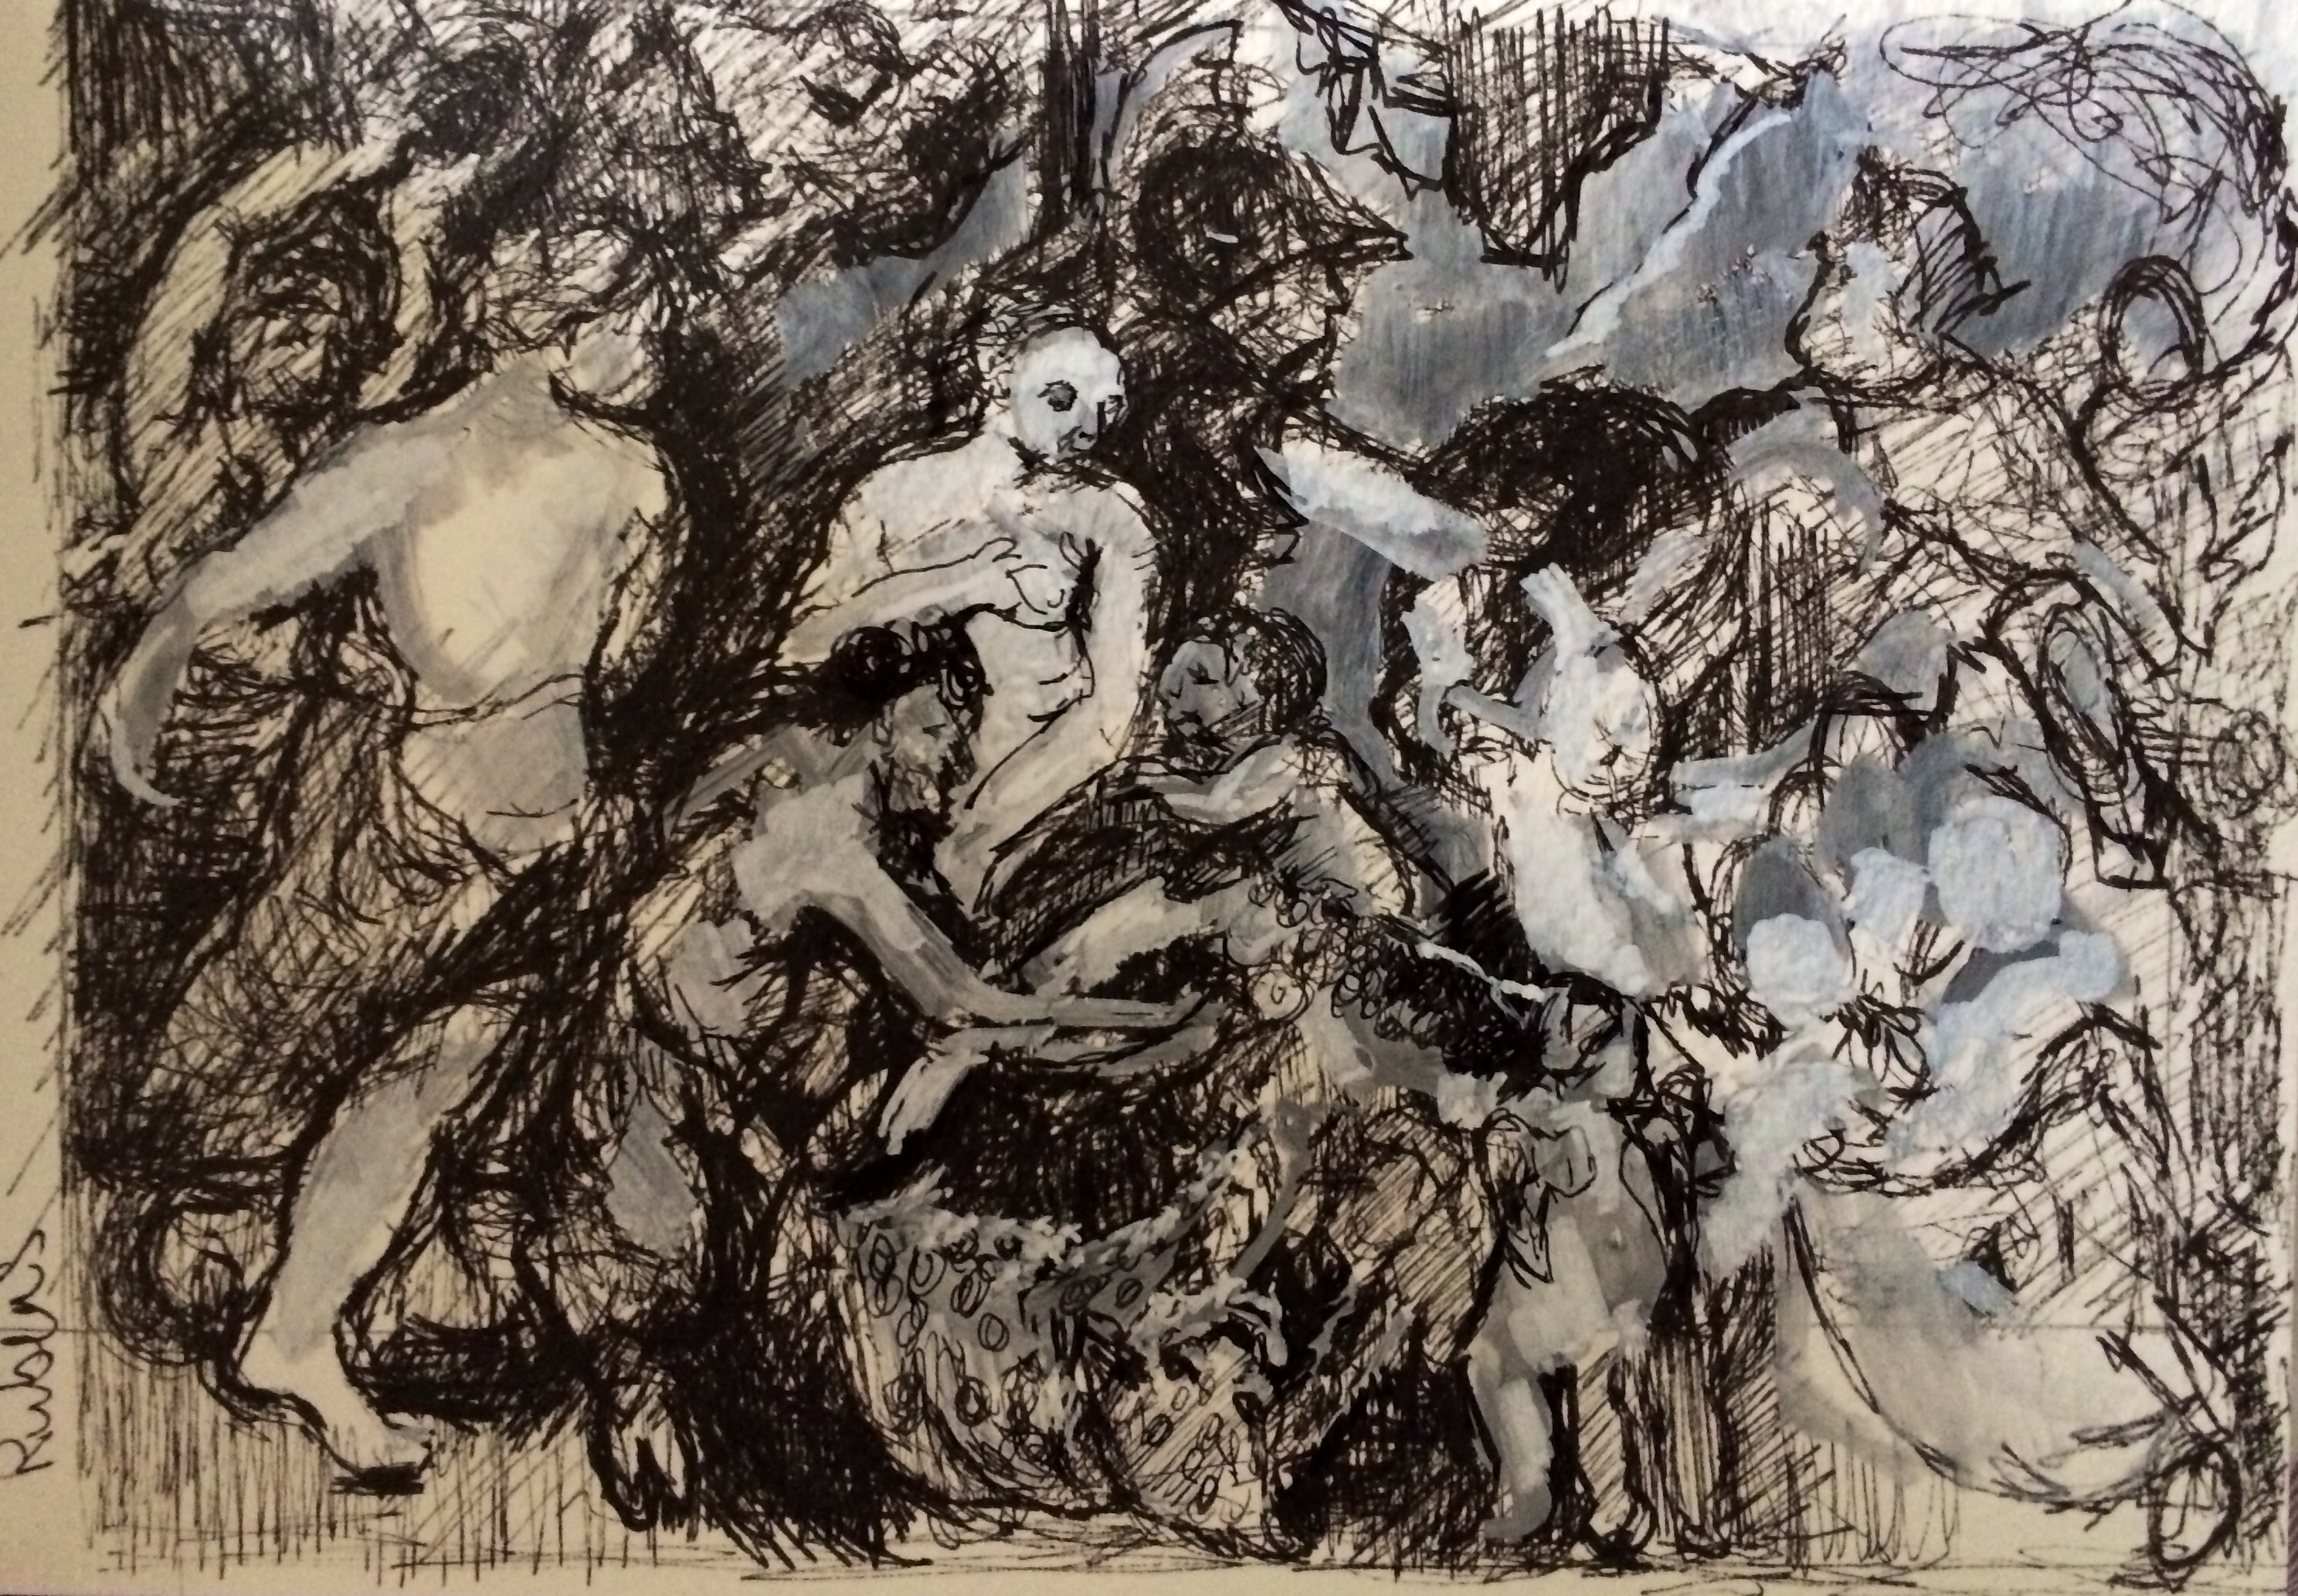 """Sketch after Rubens """"Peace & War"""", black ink and posca pen on watercolour paper, 10x8"""", Charlie Kirkham 2015."""